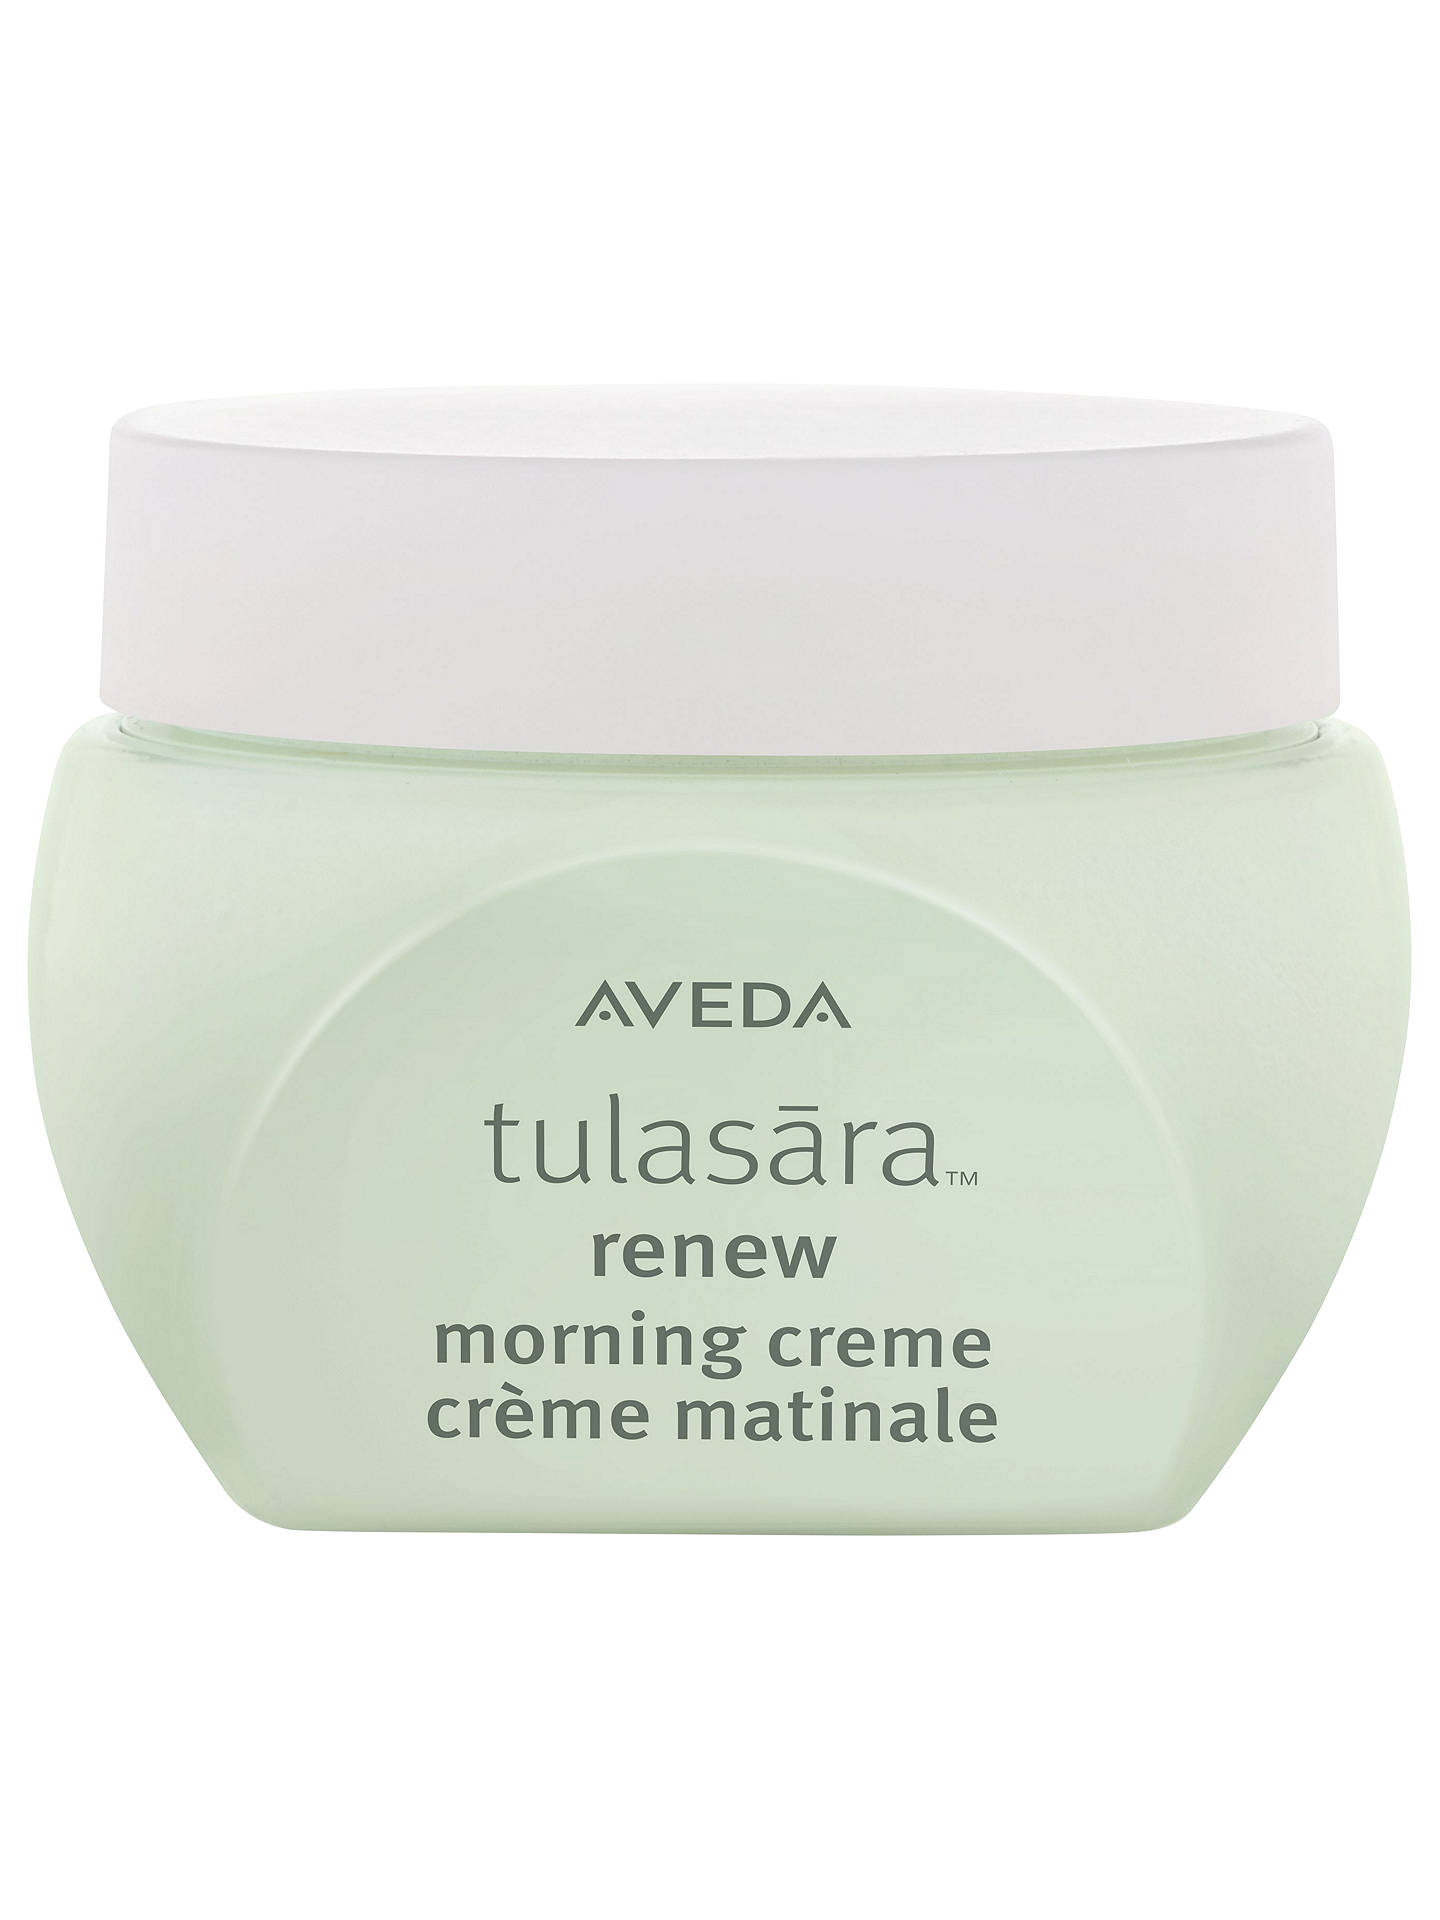 BuyAVEDA Tulasara Renew Morning Creme, 50ml Online at johnlewis.com